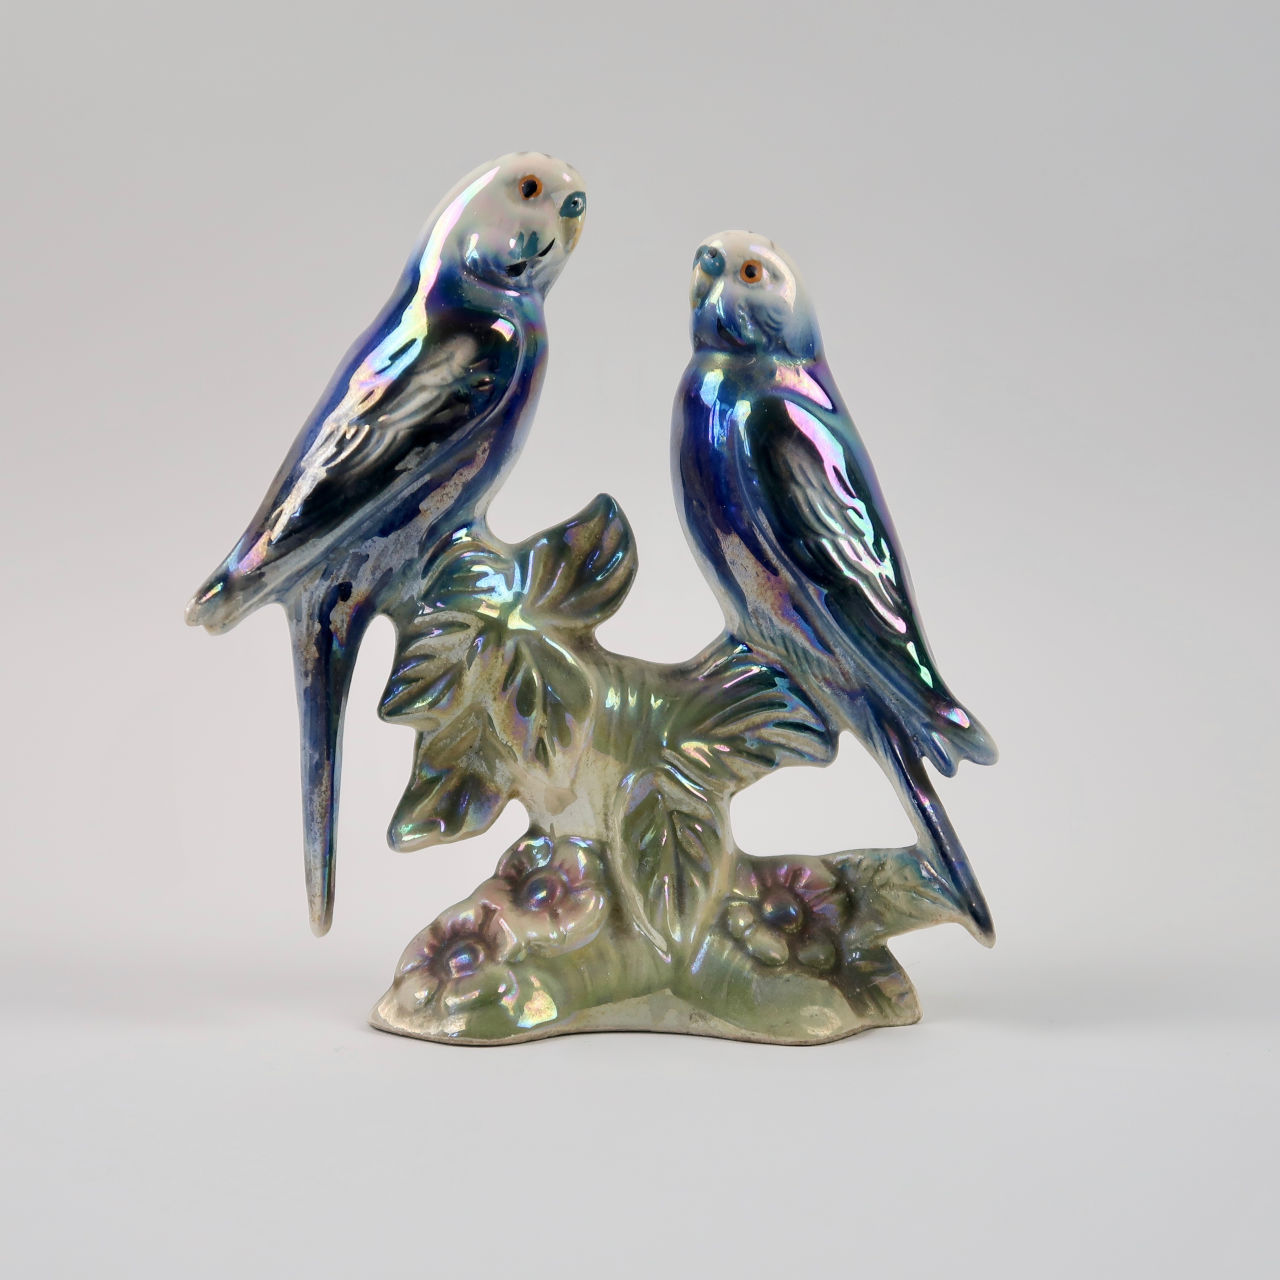 Vintage Lustre Ornament of Budgerigars by Jema Holland